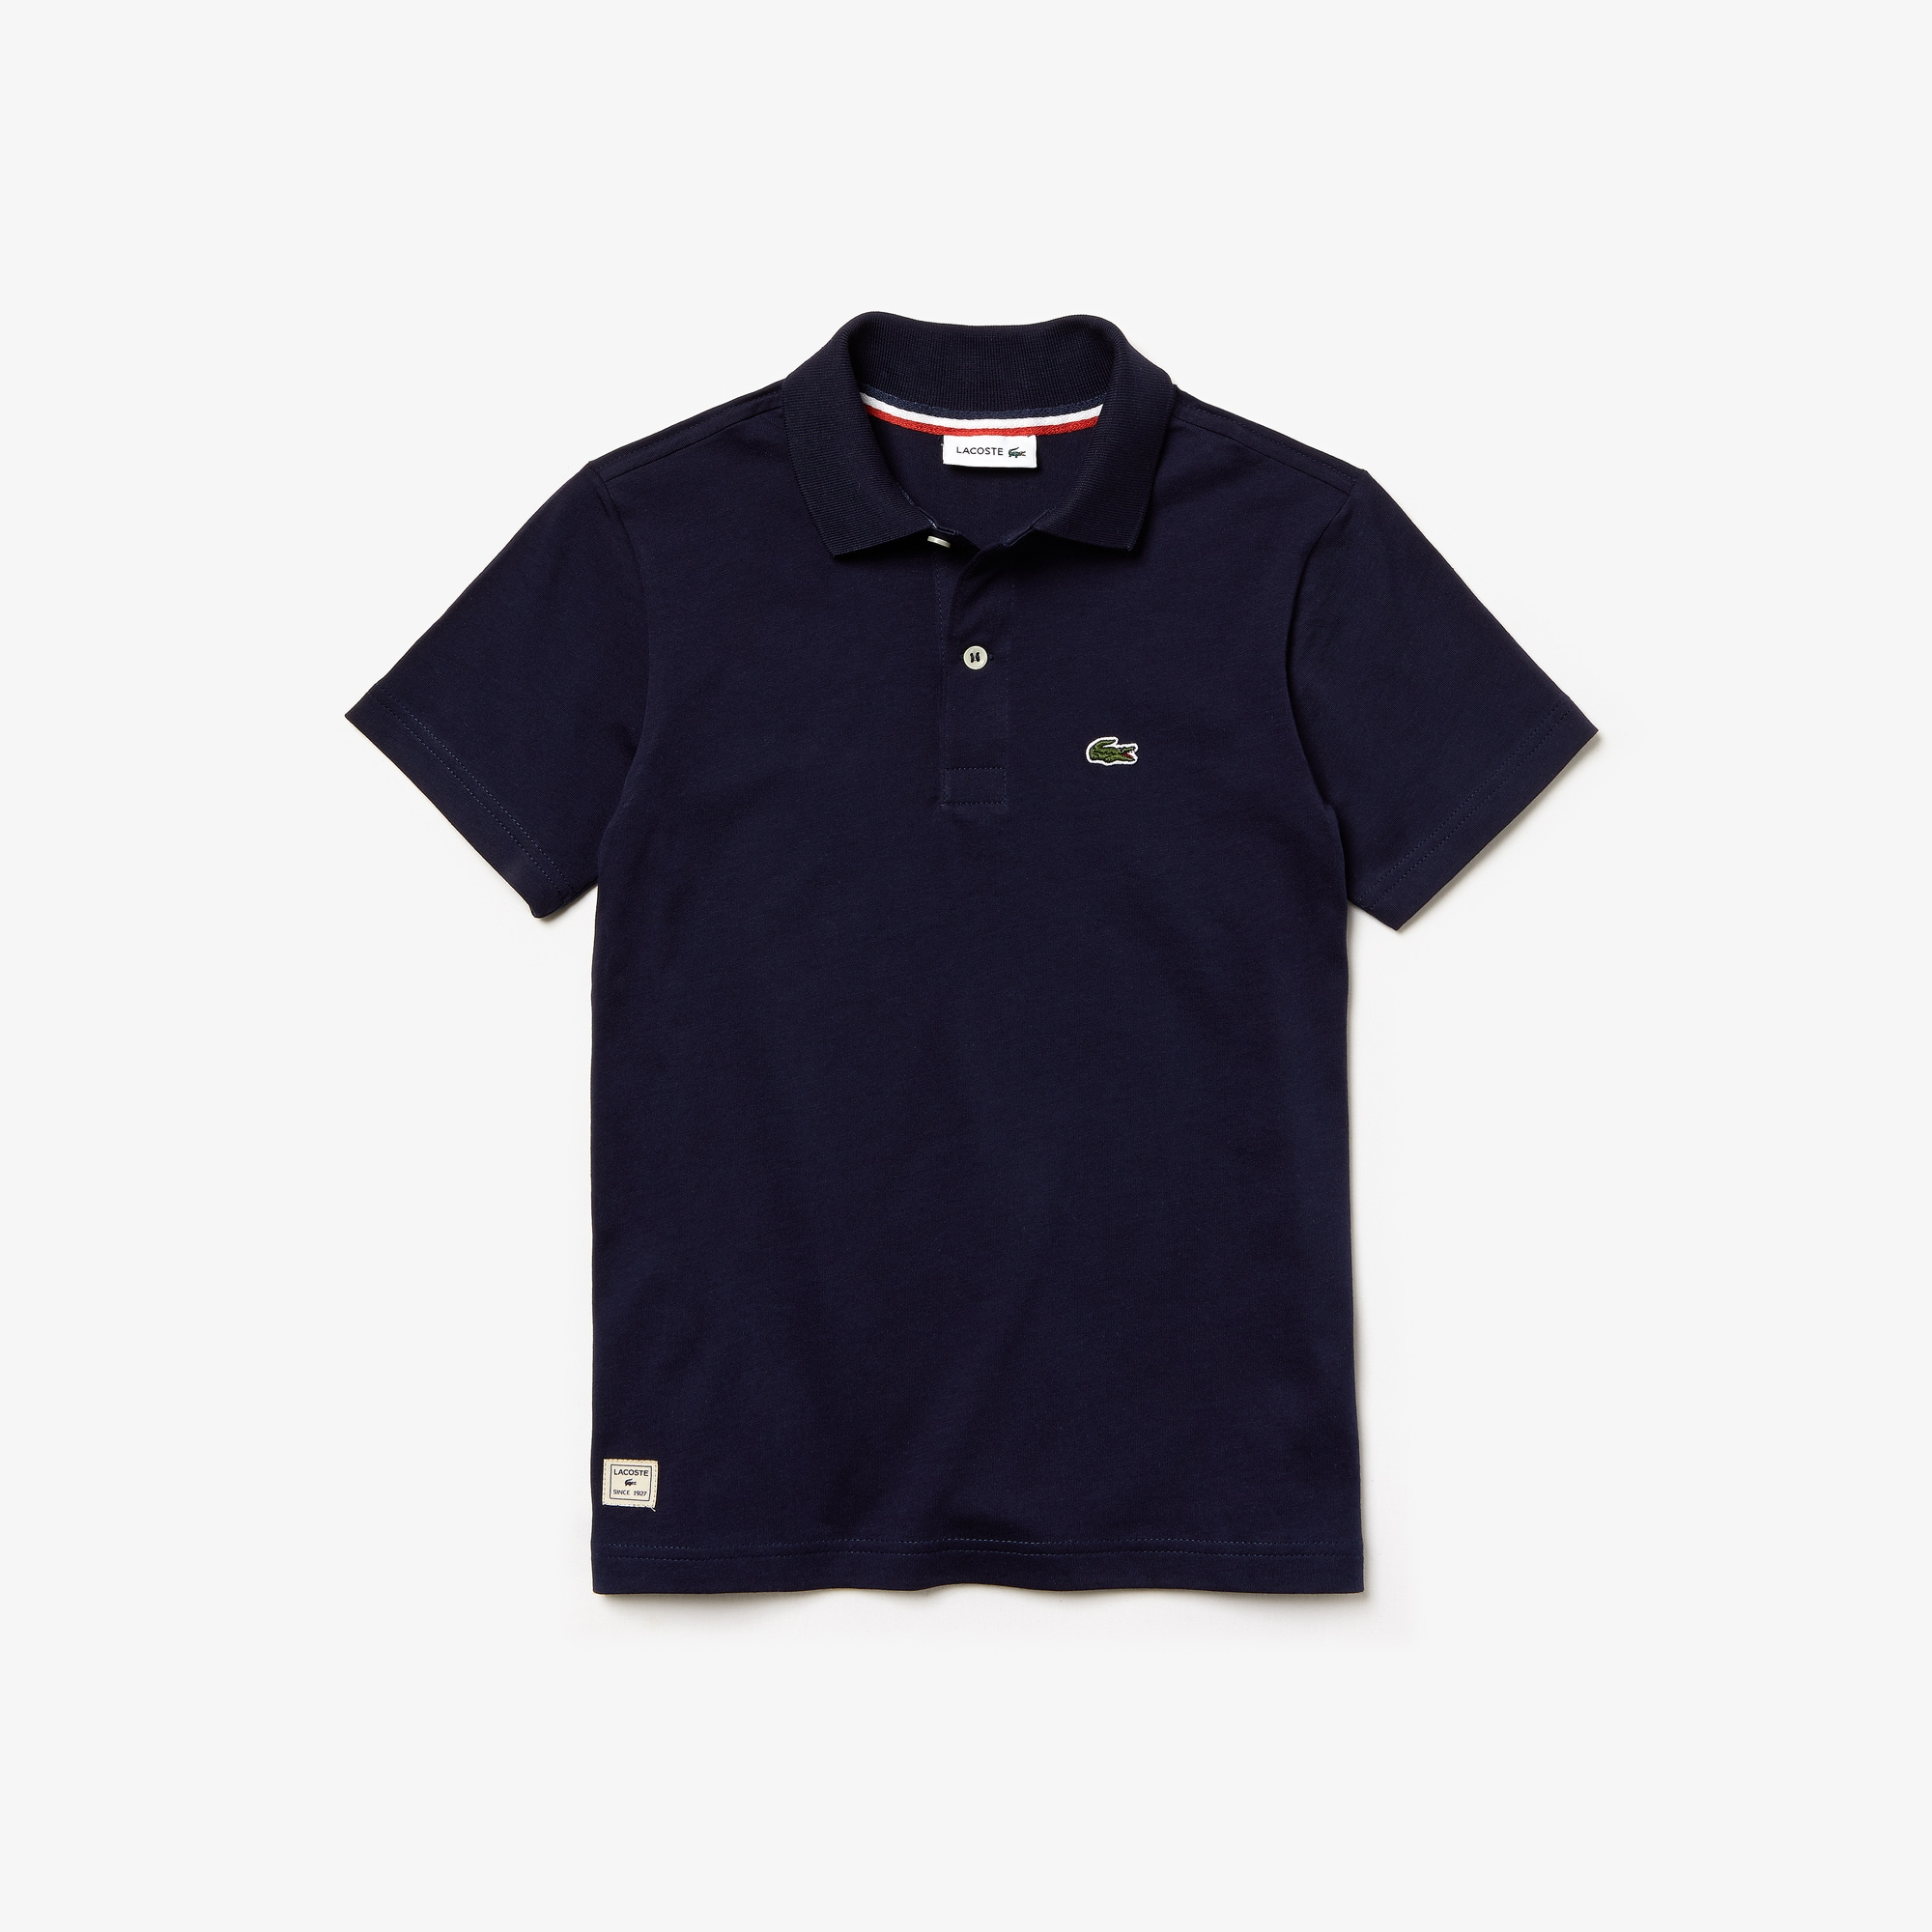 Boys' Lacoste Cotton Jersey Polo Shirt